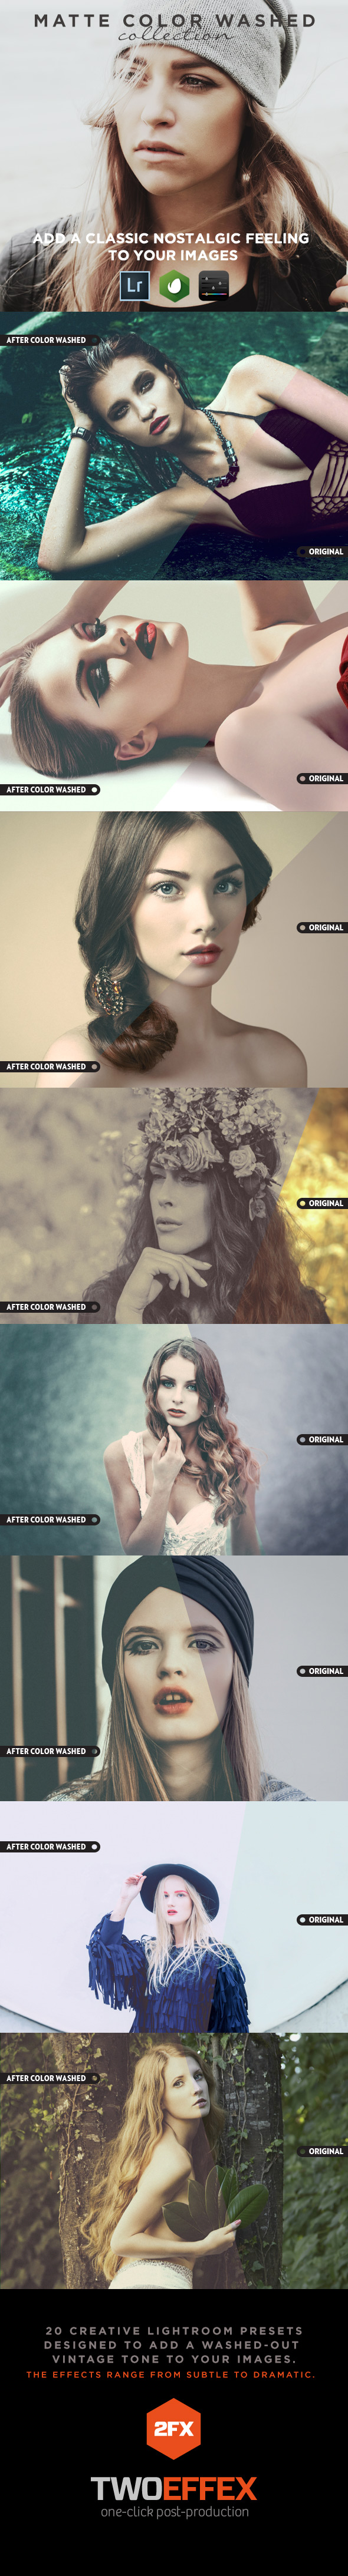 20 - Color Washed Lightroom Presets - Vintage Lightroom Presets